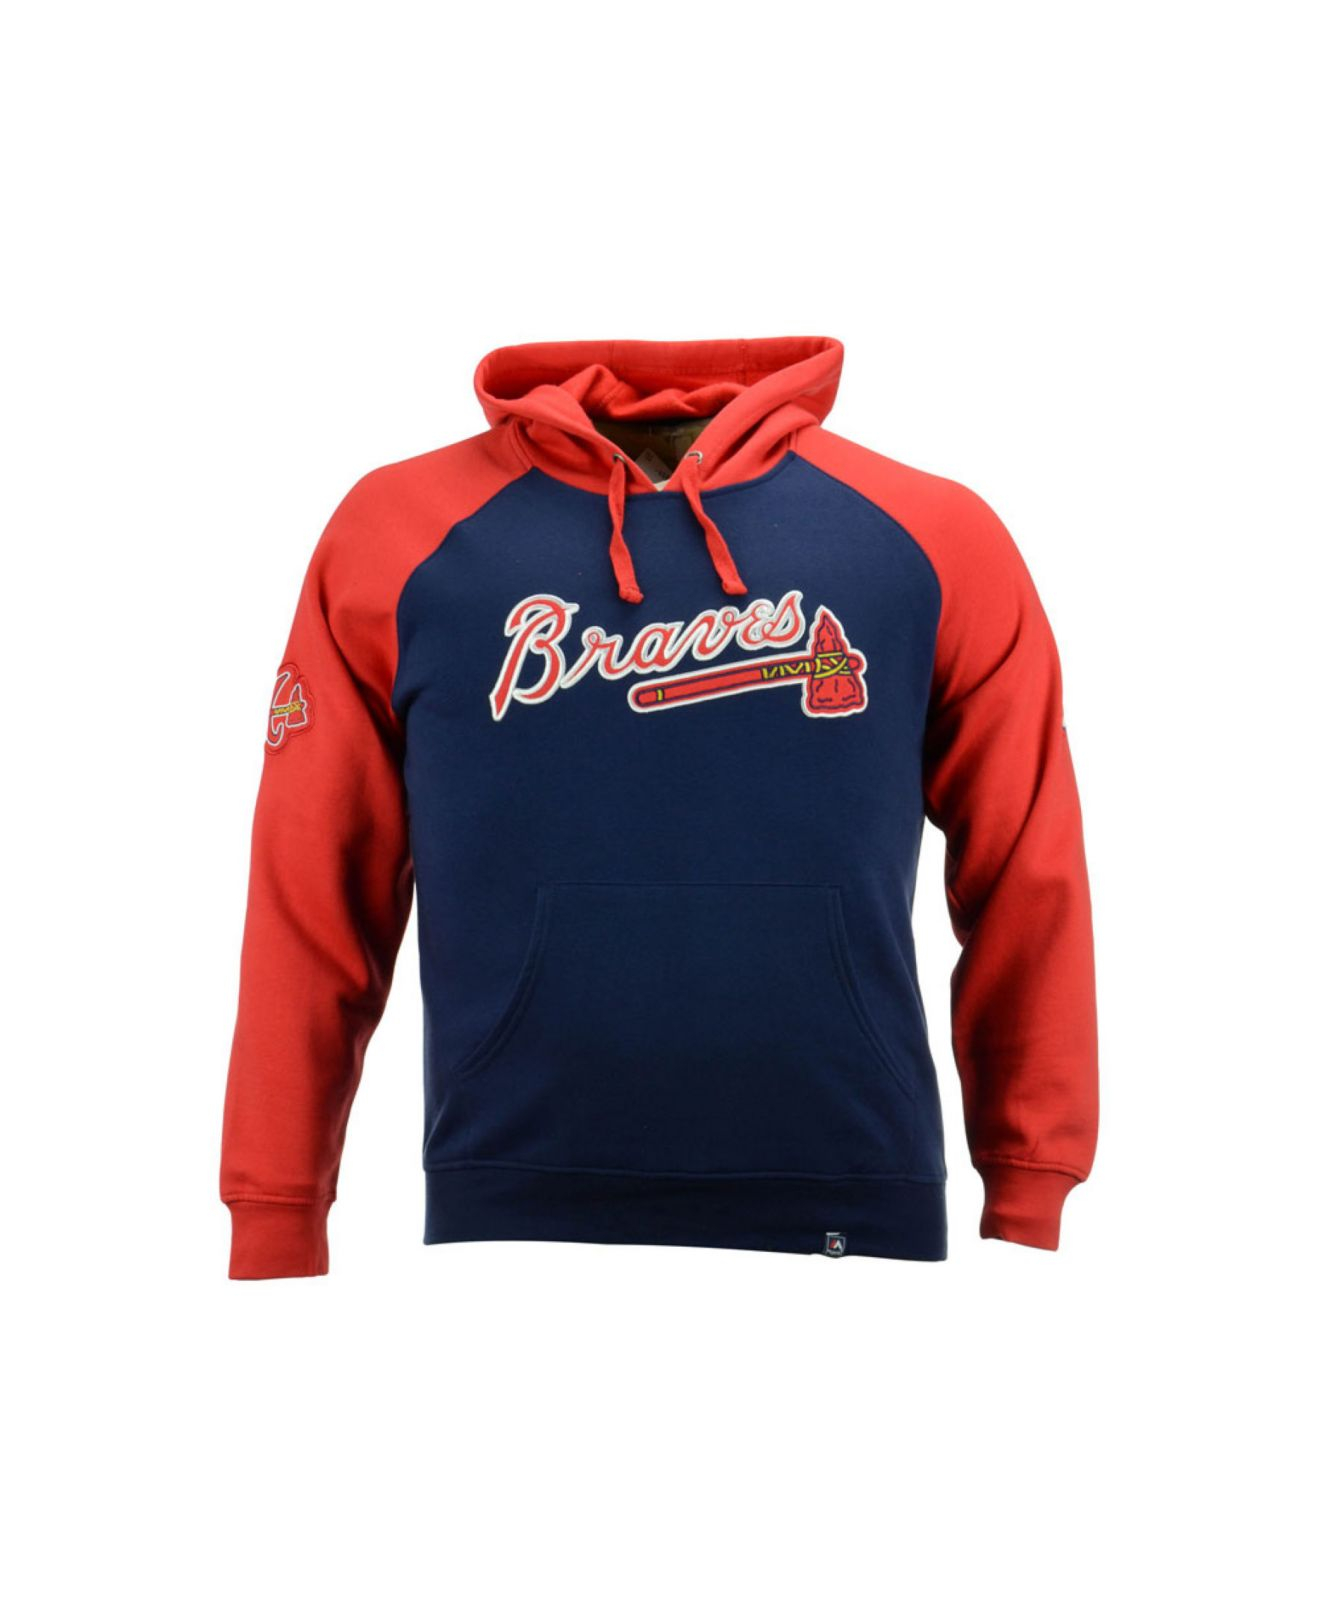 new arrival bf3eb 74ea8 Majestic Blue Men's Atlanta Braves Cunning Play Hoodie for men